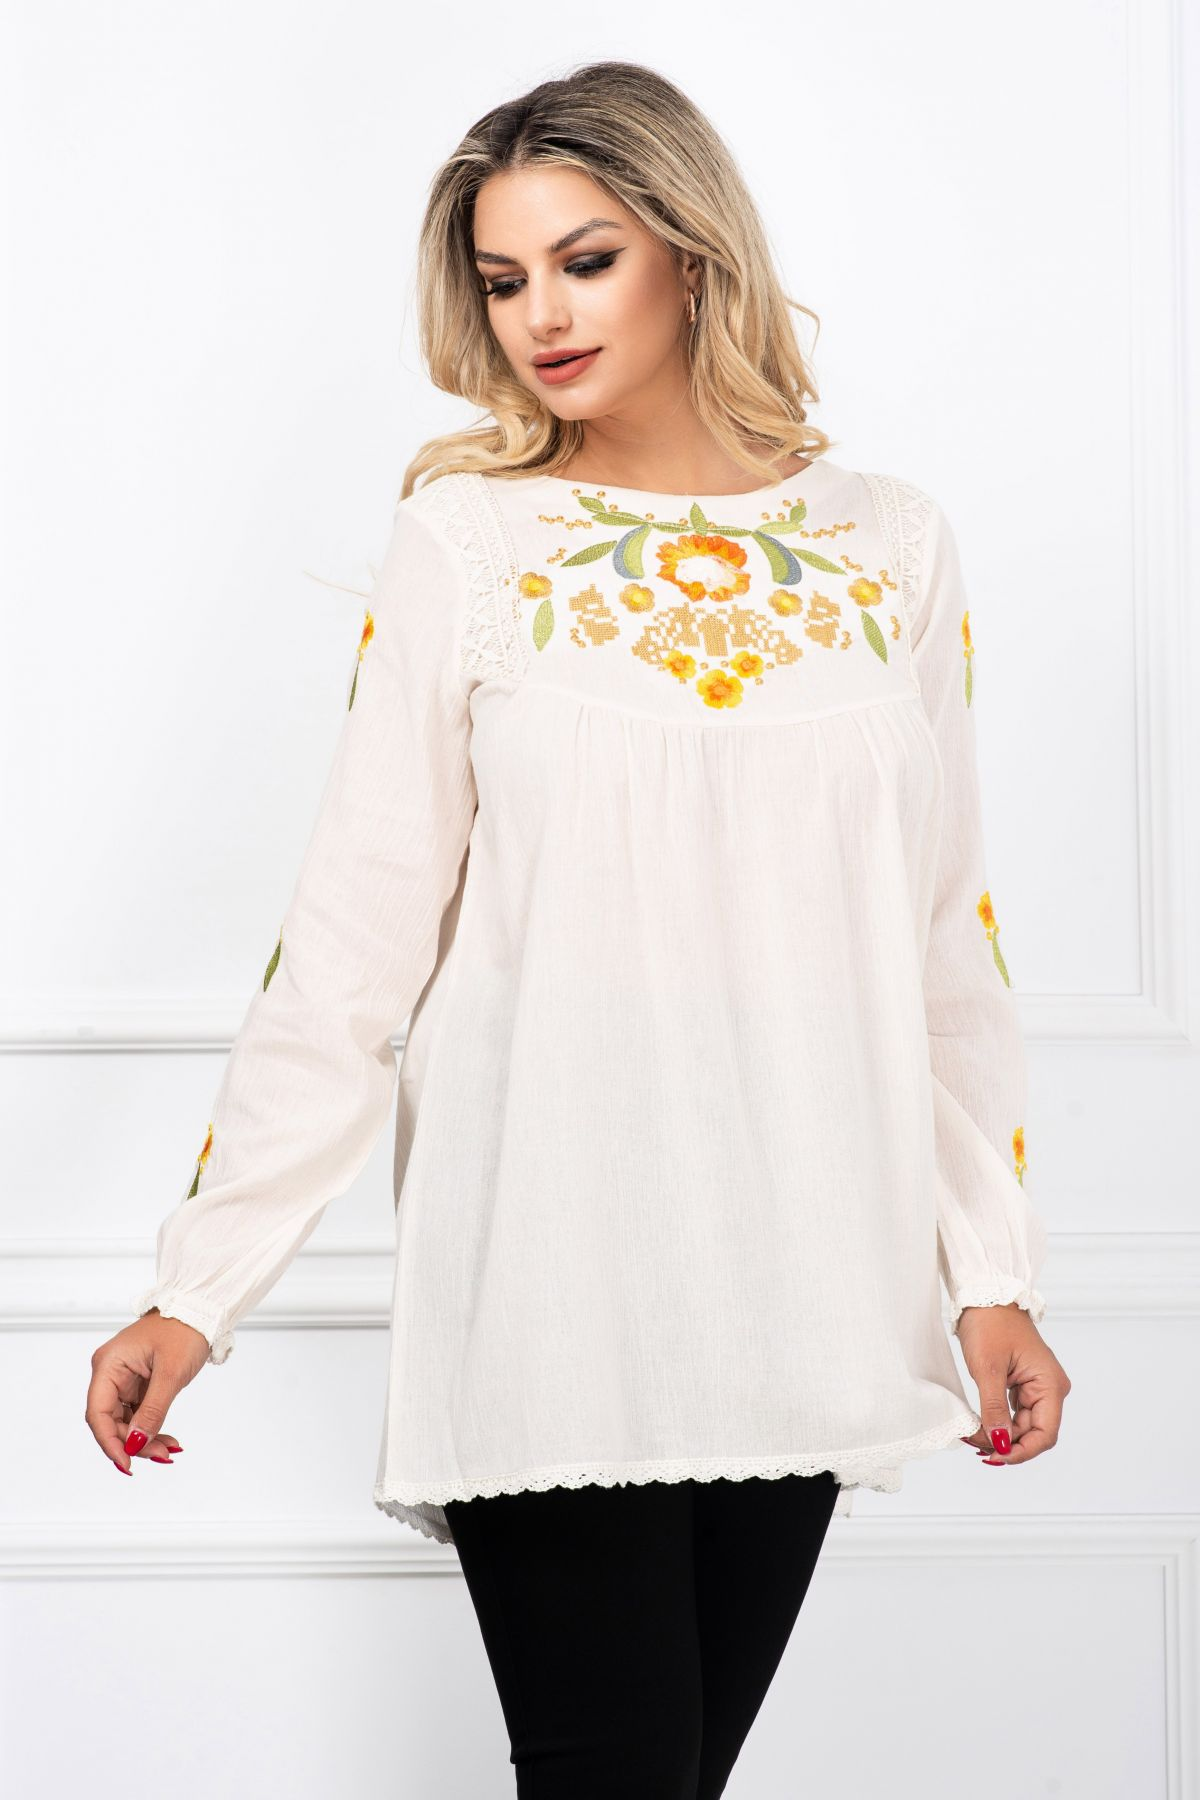 Bluza tip ie lunga traditionala ivoire cu broderie florala By InPuff